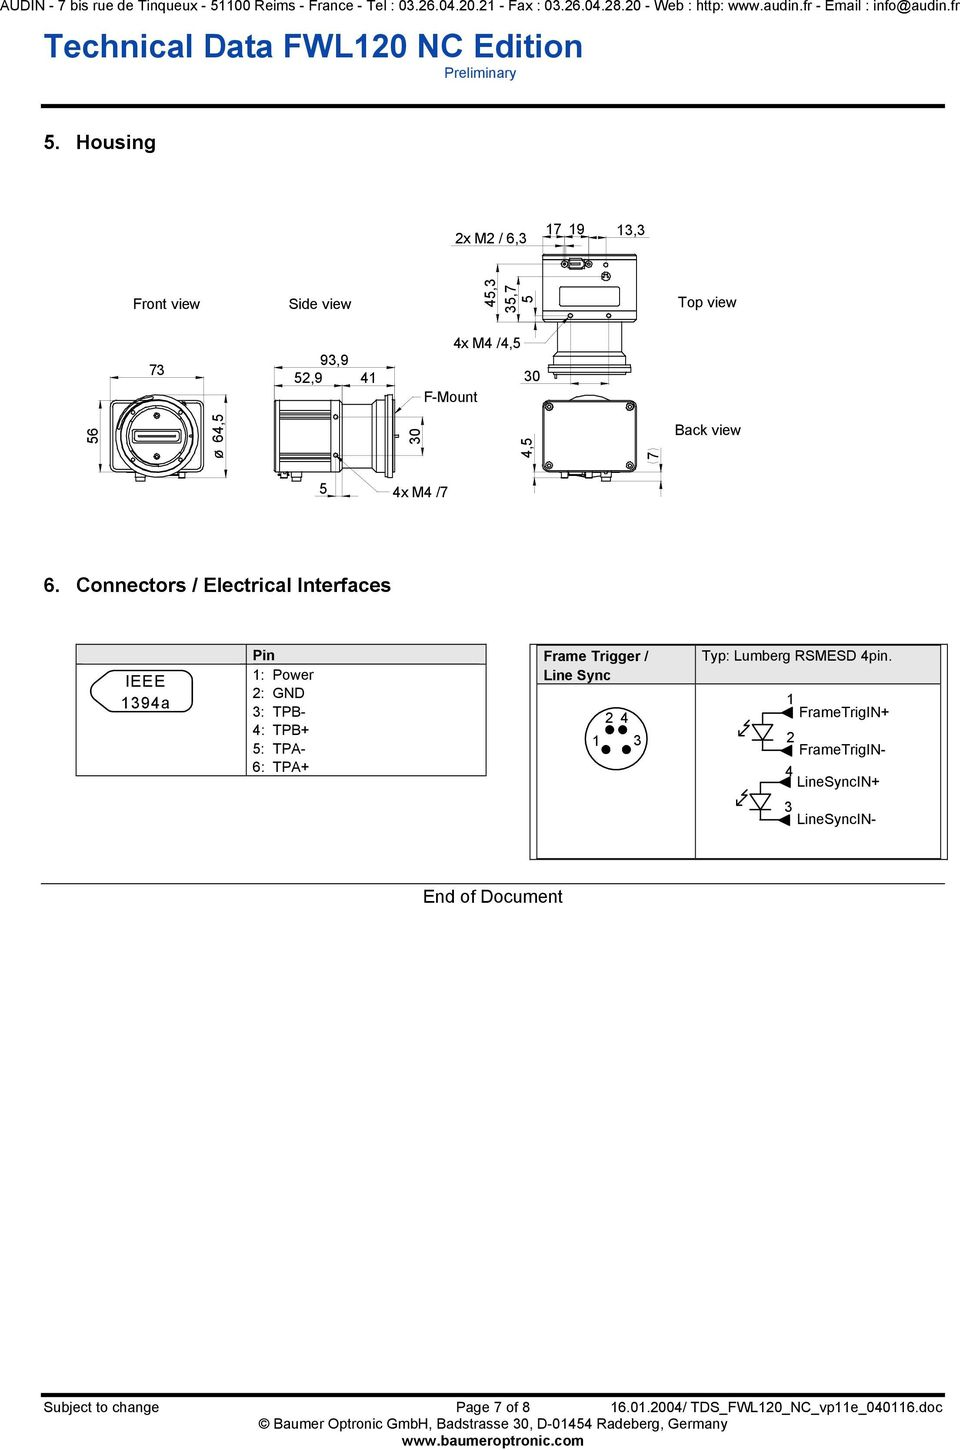 Connecors / Elecrical Inerfaces IEEE 1394 IEEE 1394a Pin 1: Power 2: GND 3: TPB- 4: TPB+ 5: TPA- 6: TPA+ Frame